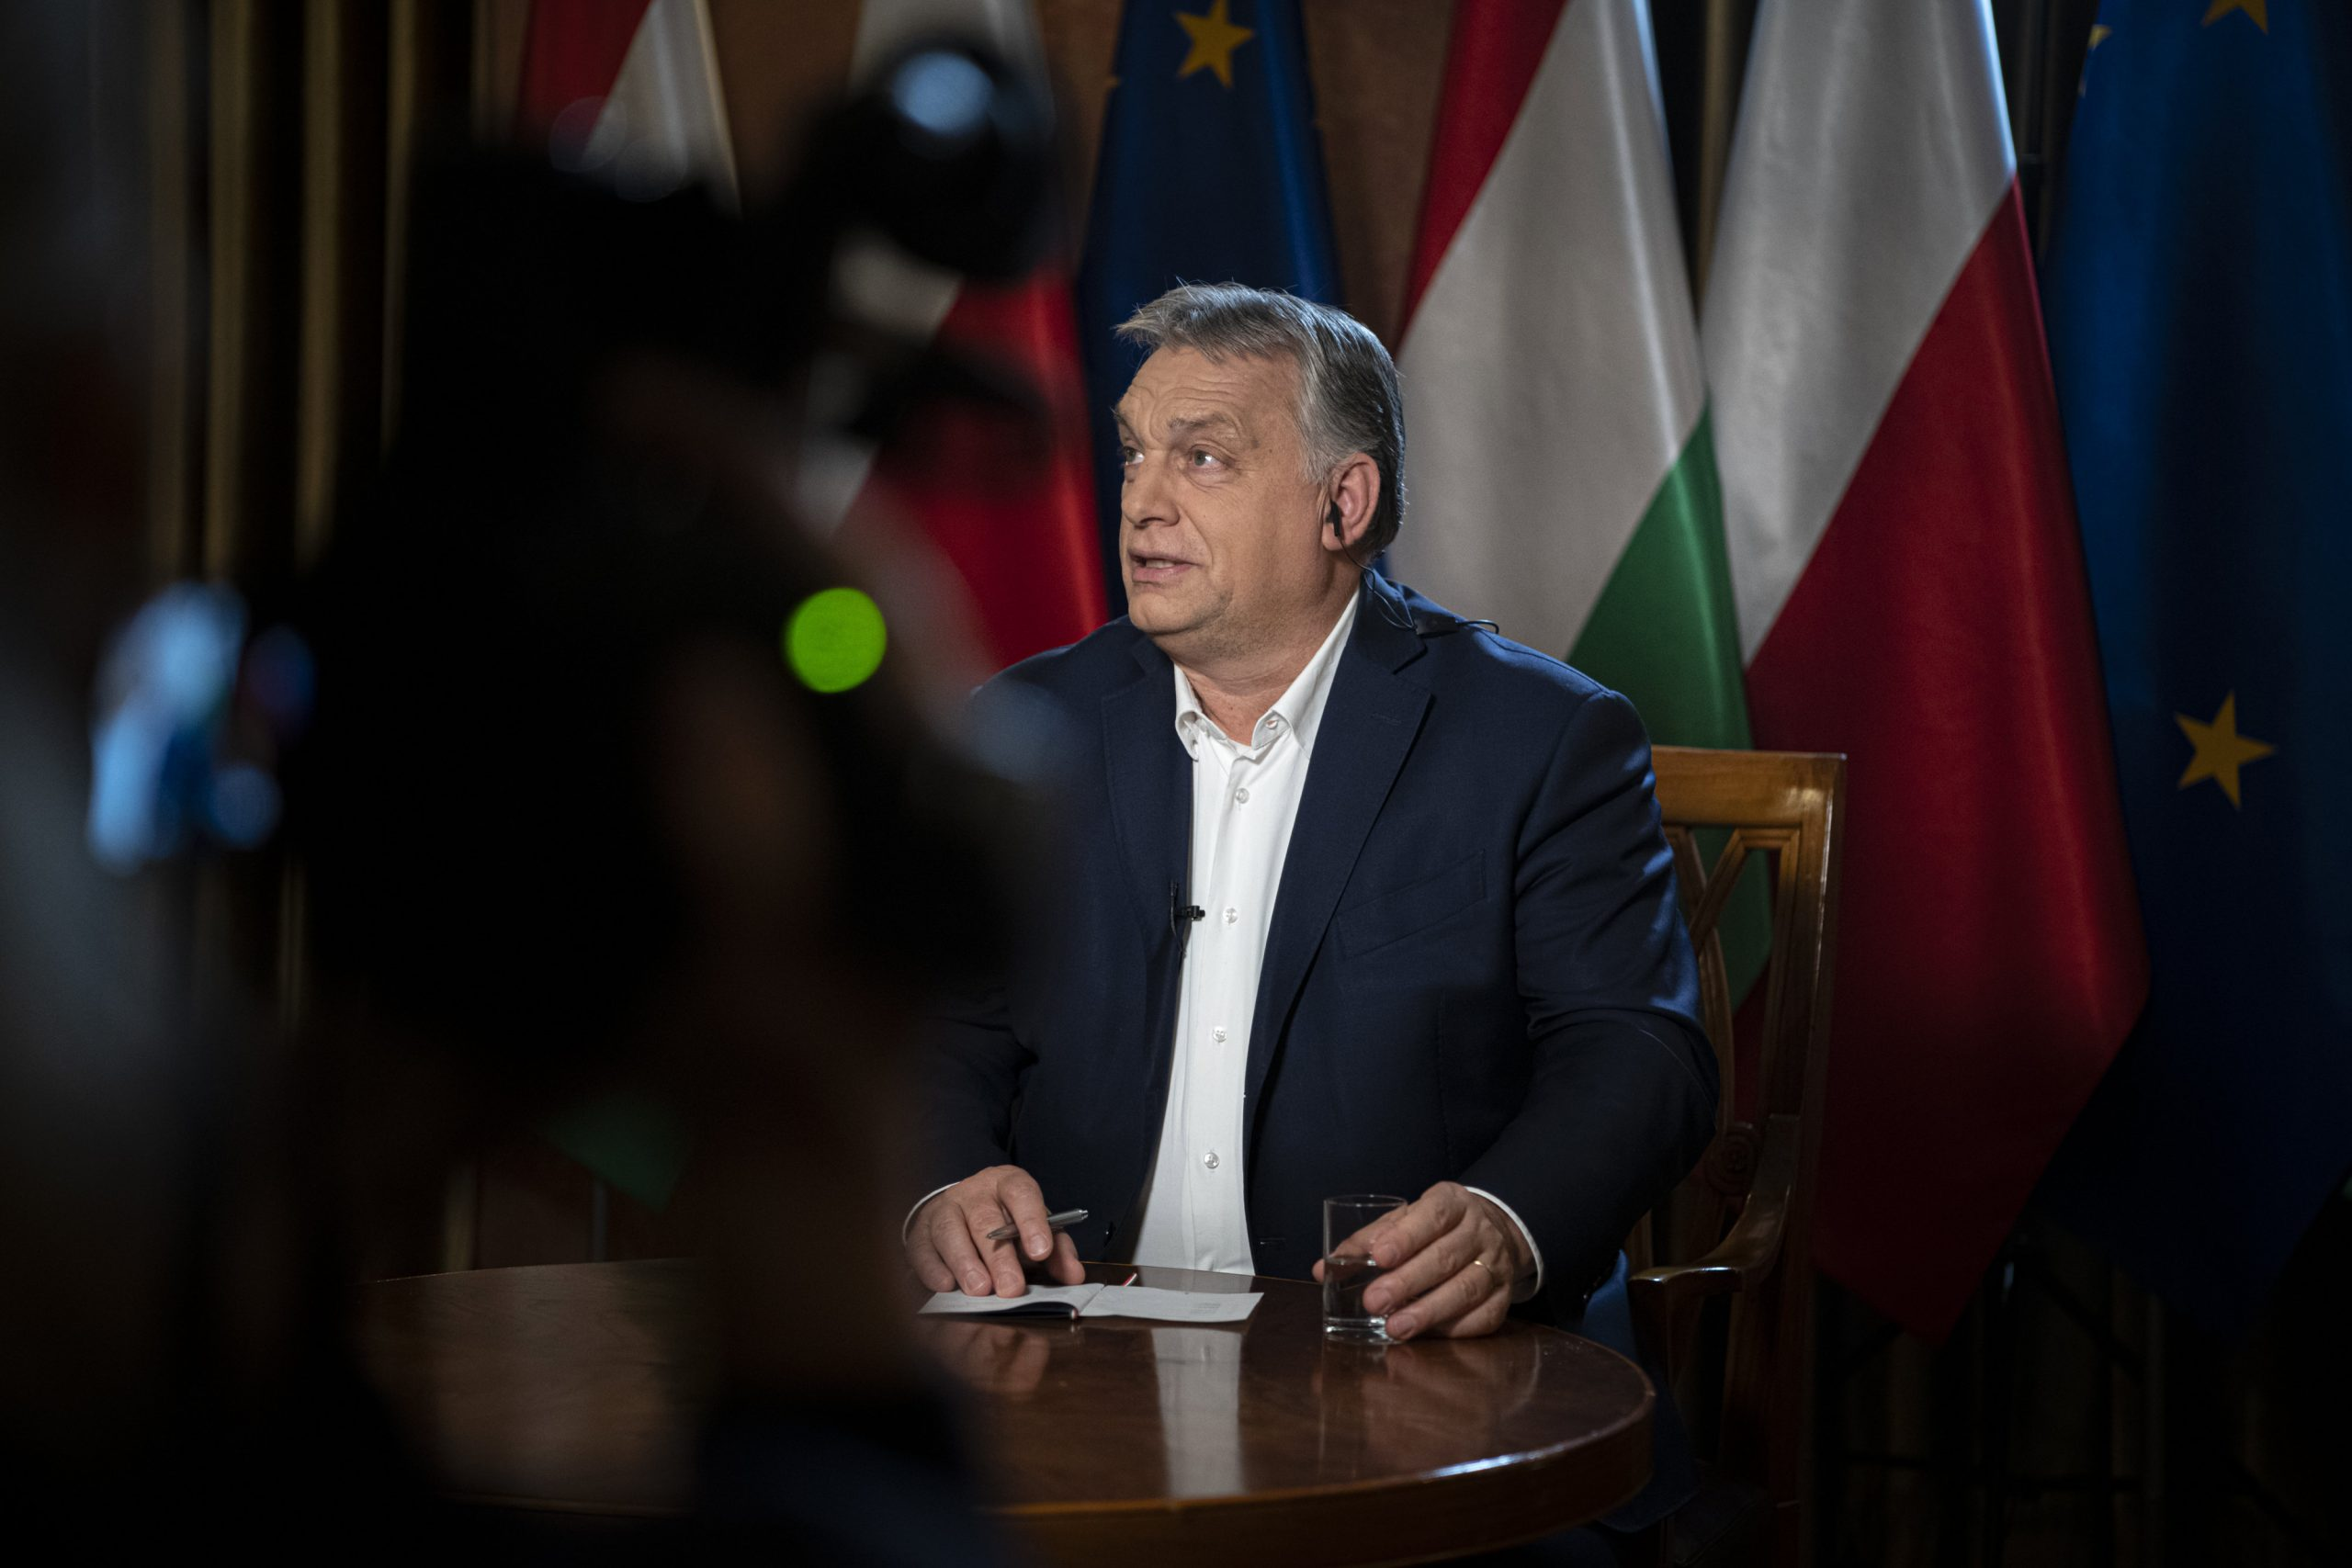 Orbán: 'We Have a Chance for a Polish-Hungarian Victory'